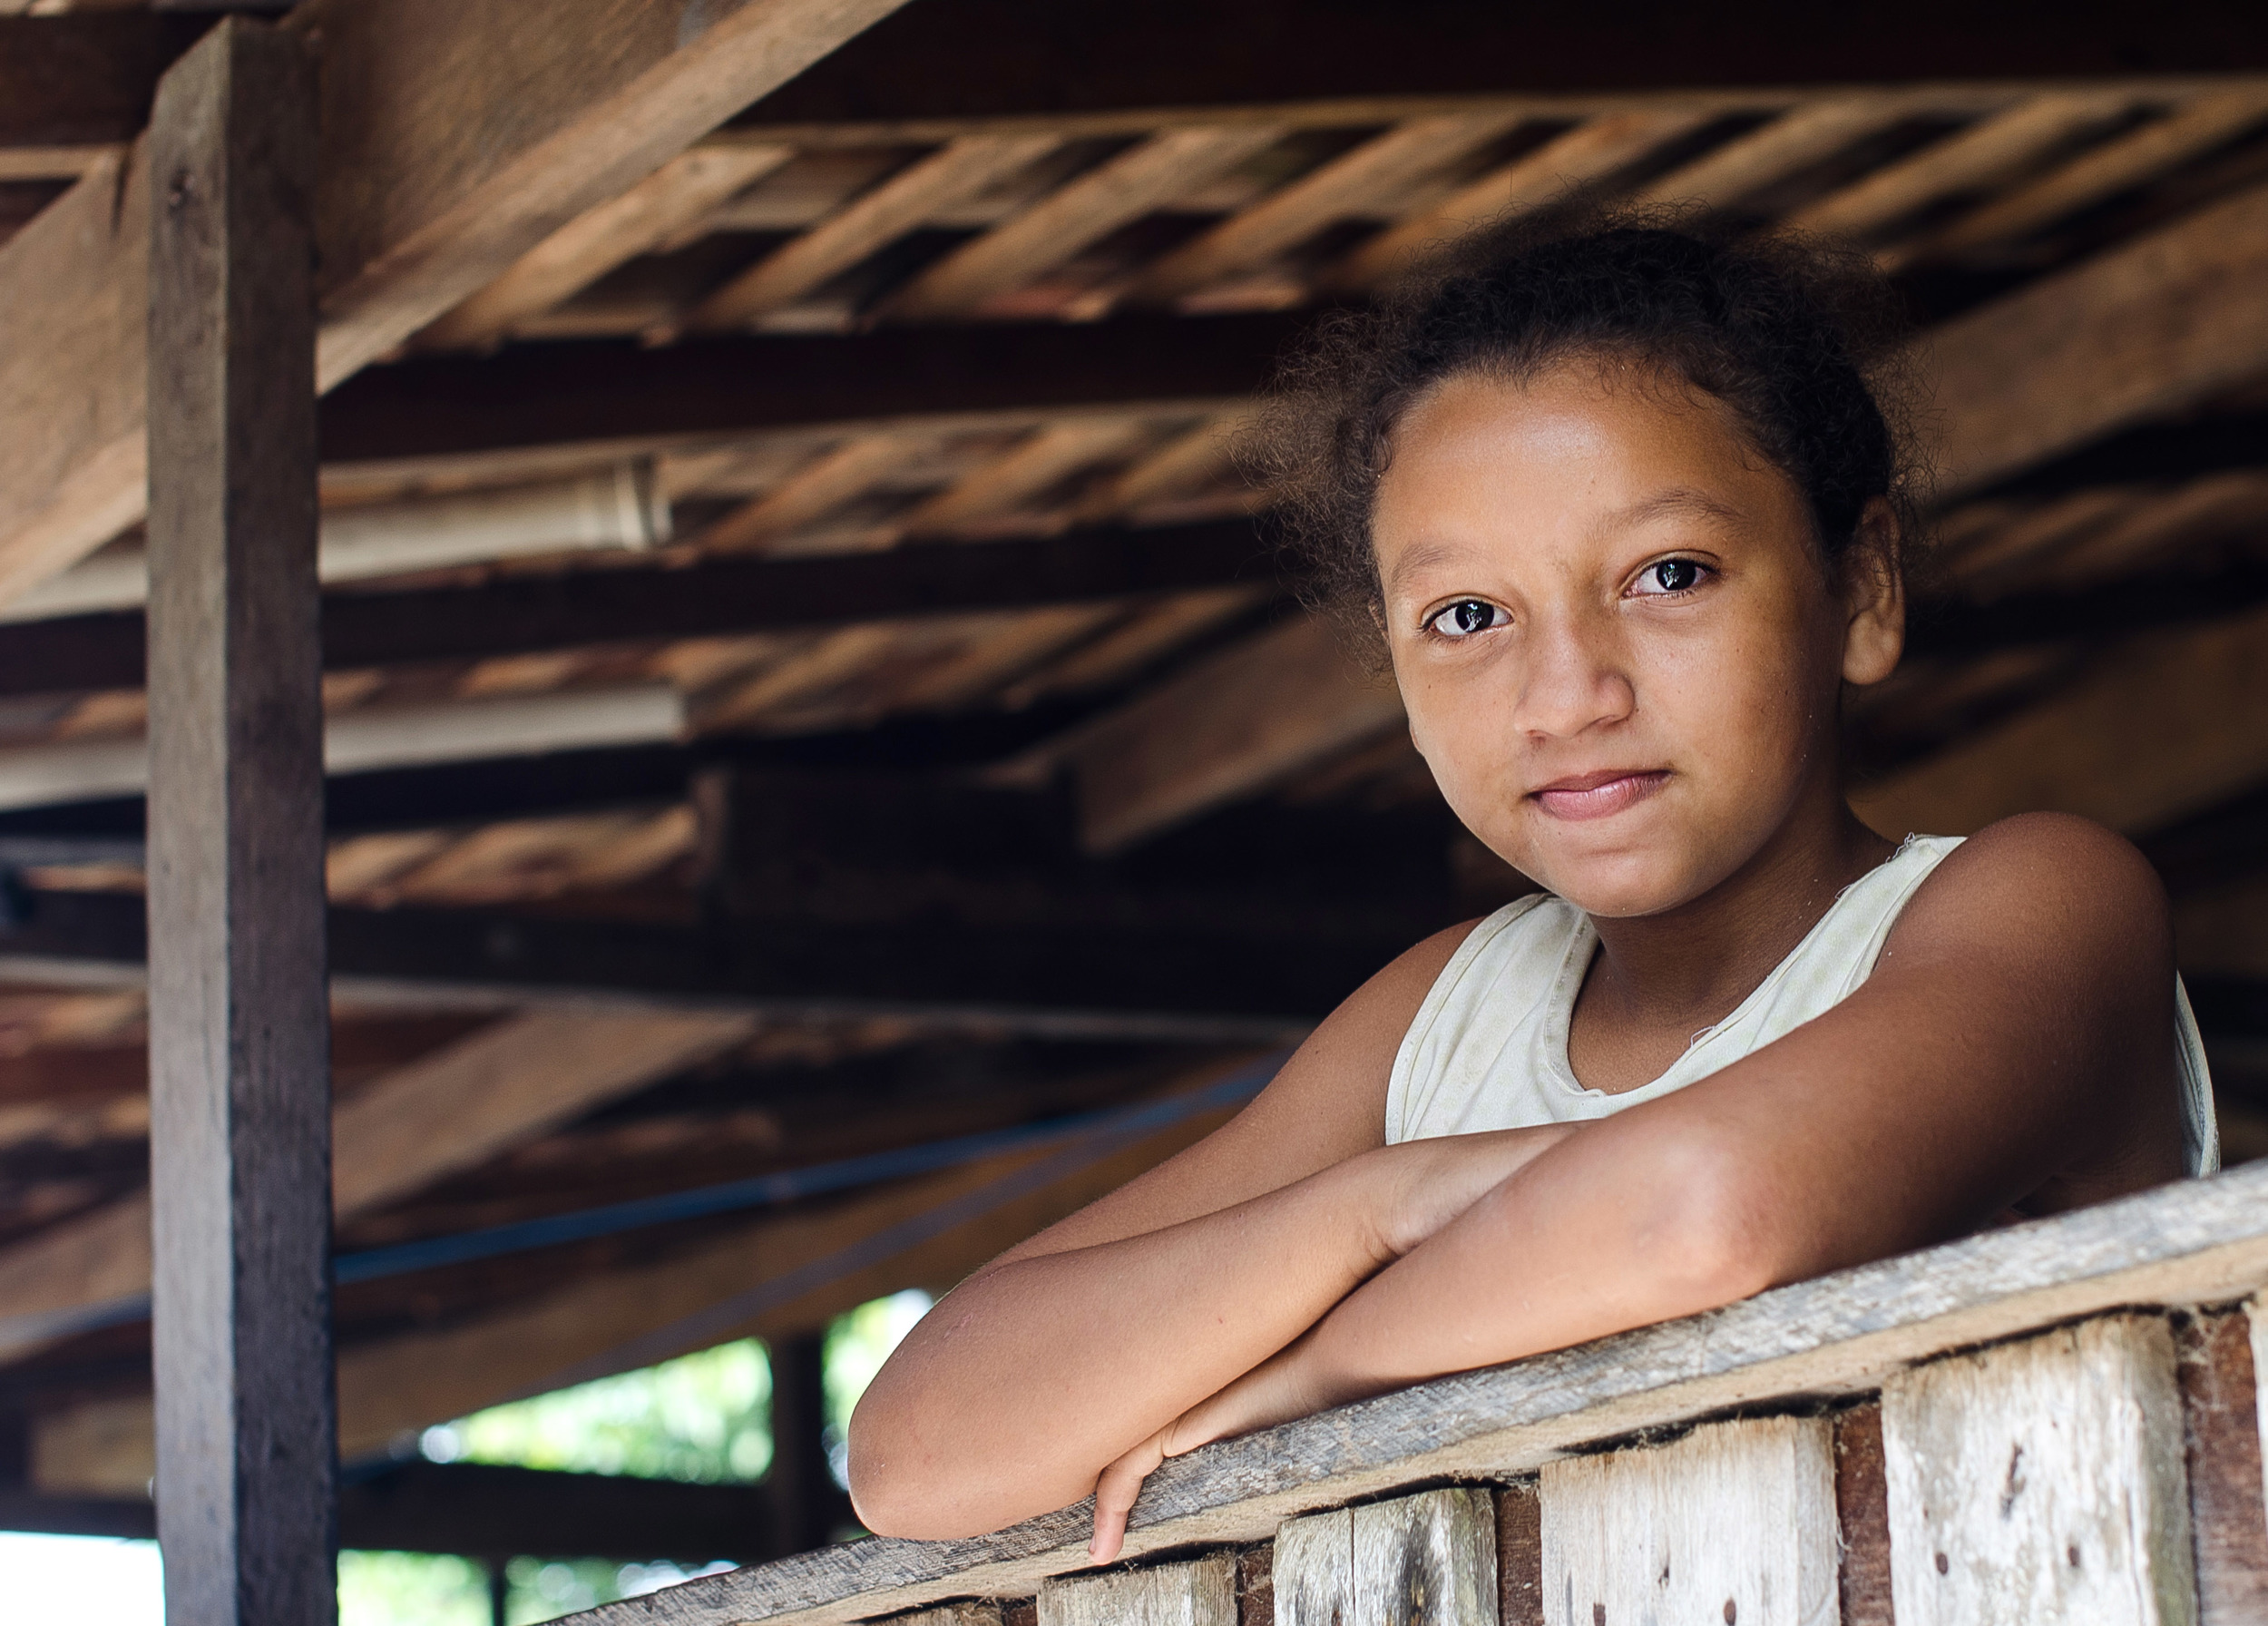 One of the many children who live in their home, presumably a grandchild.